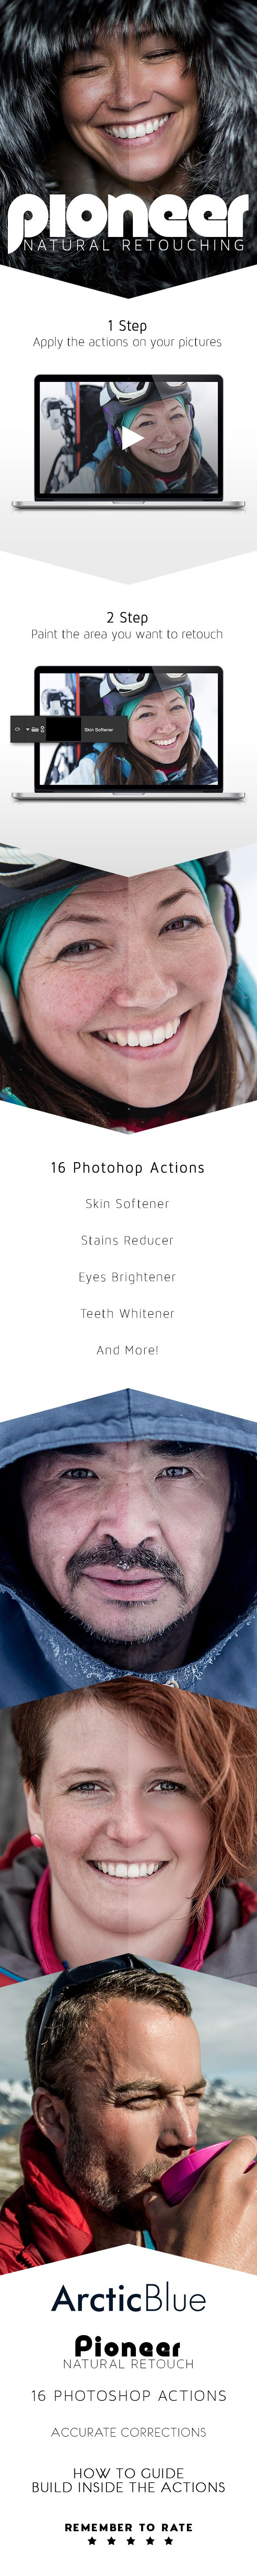 Pioneer - Natural Retouching Actions - Photo Effects Actions